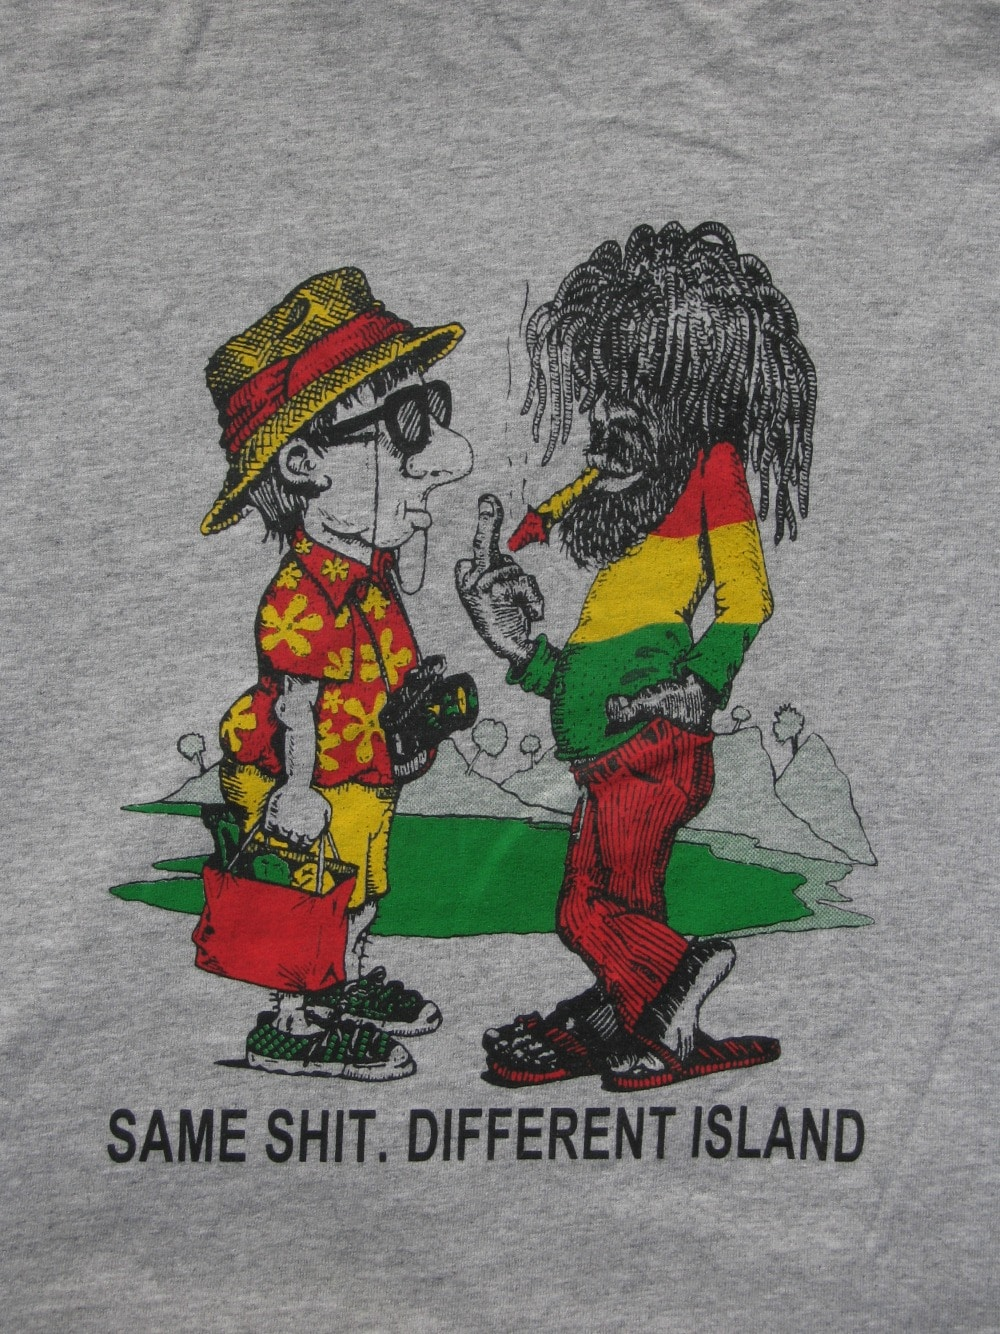 Baby Boomer Travel | Caribbean | Tee shirt humor - same shit - different island